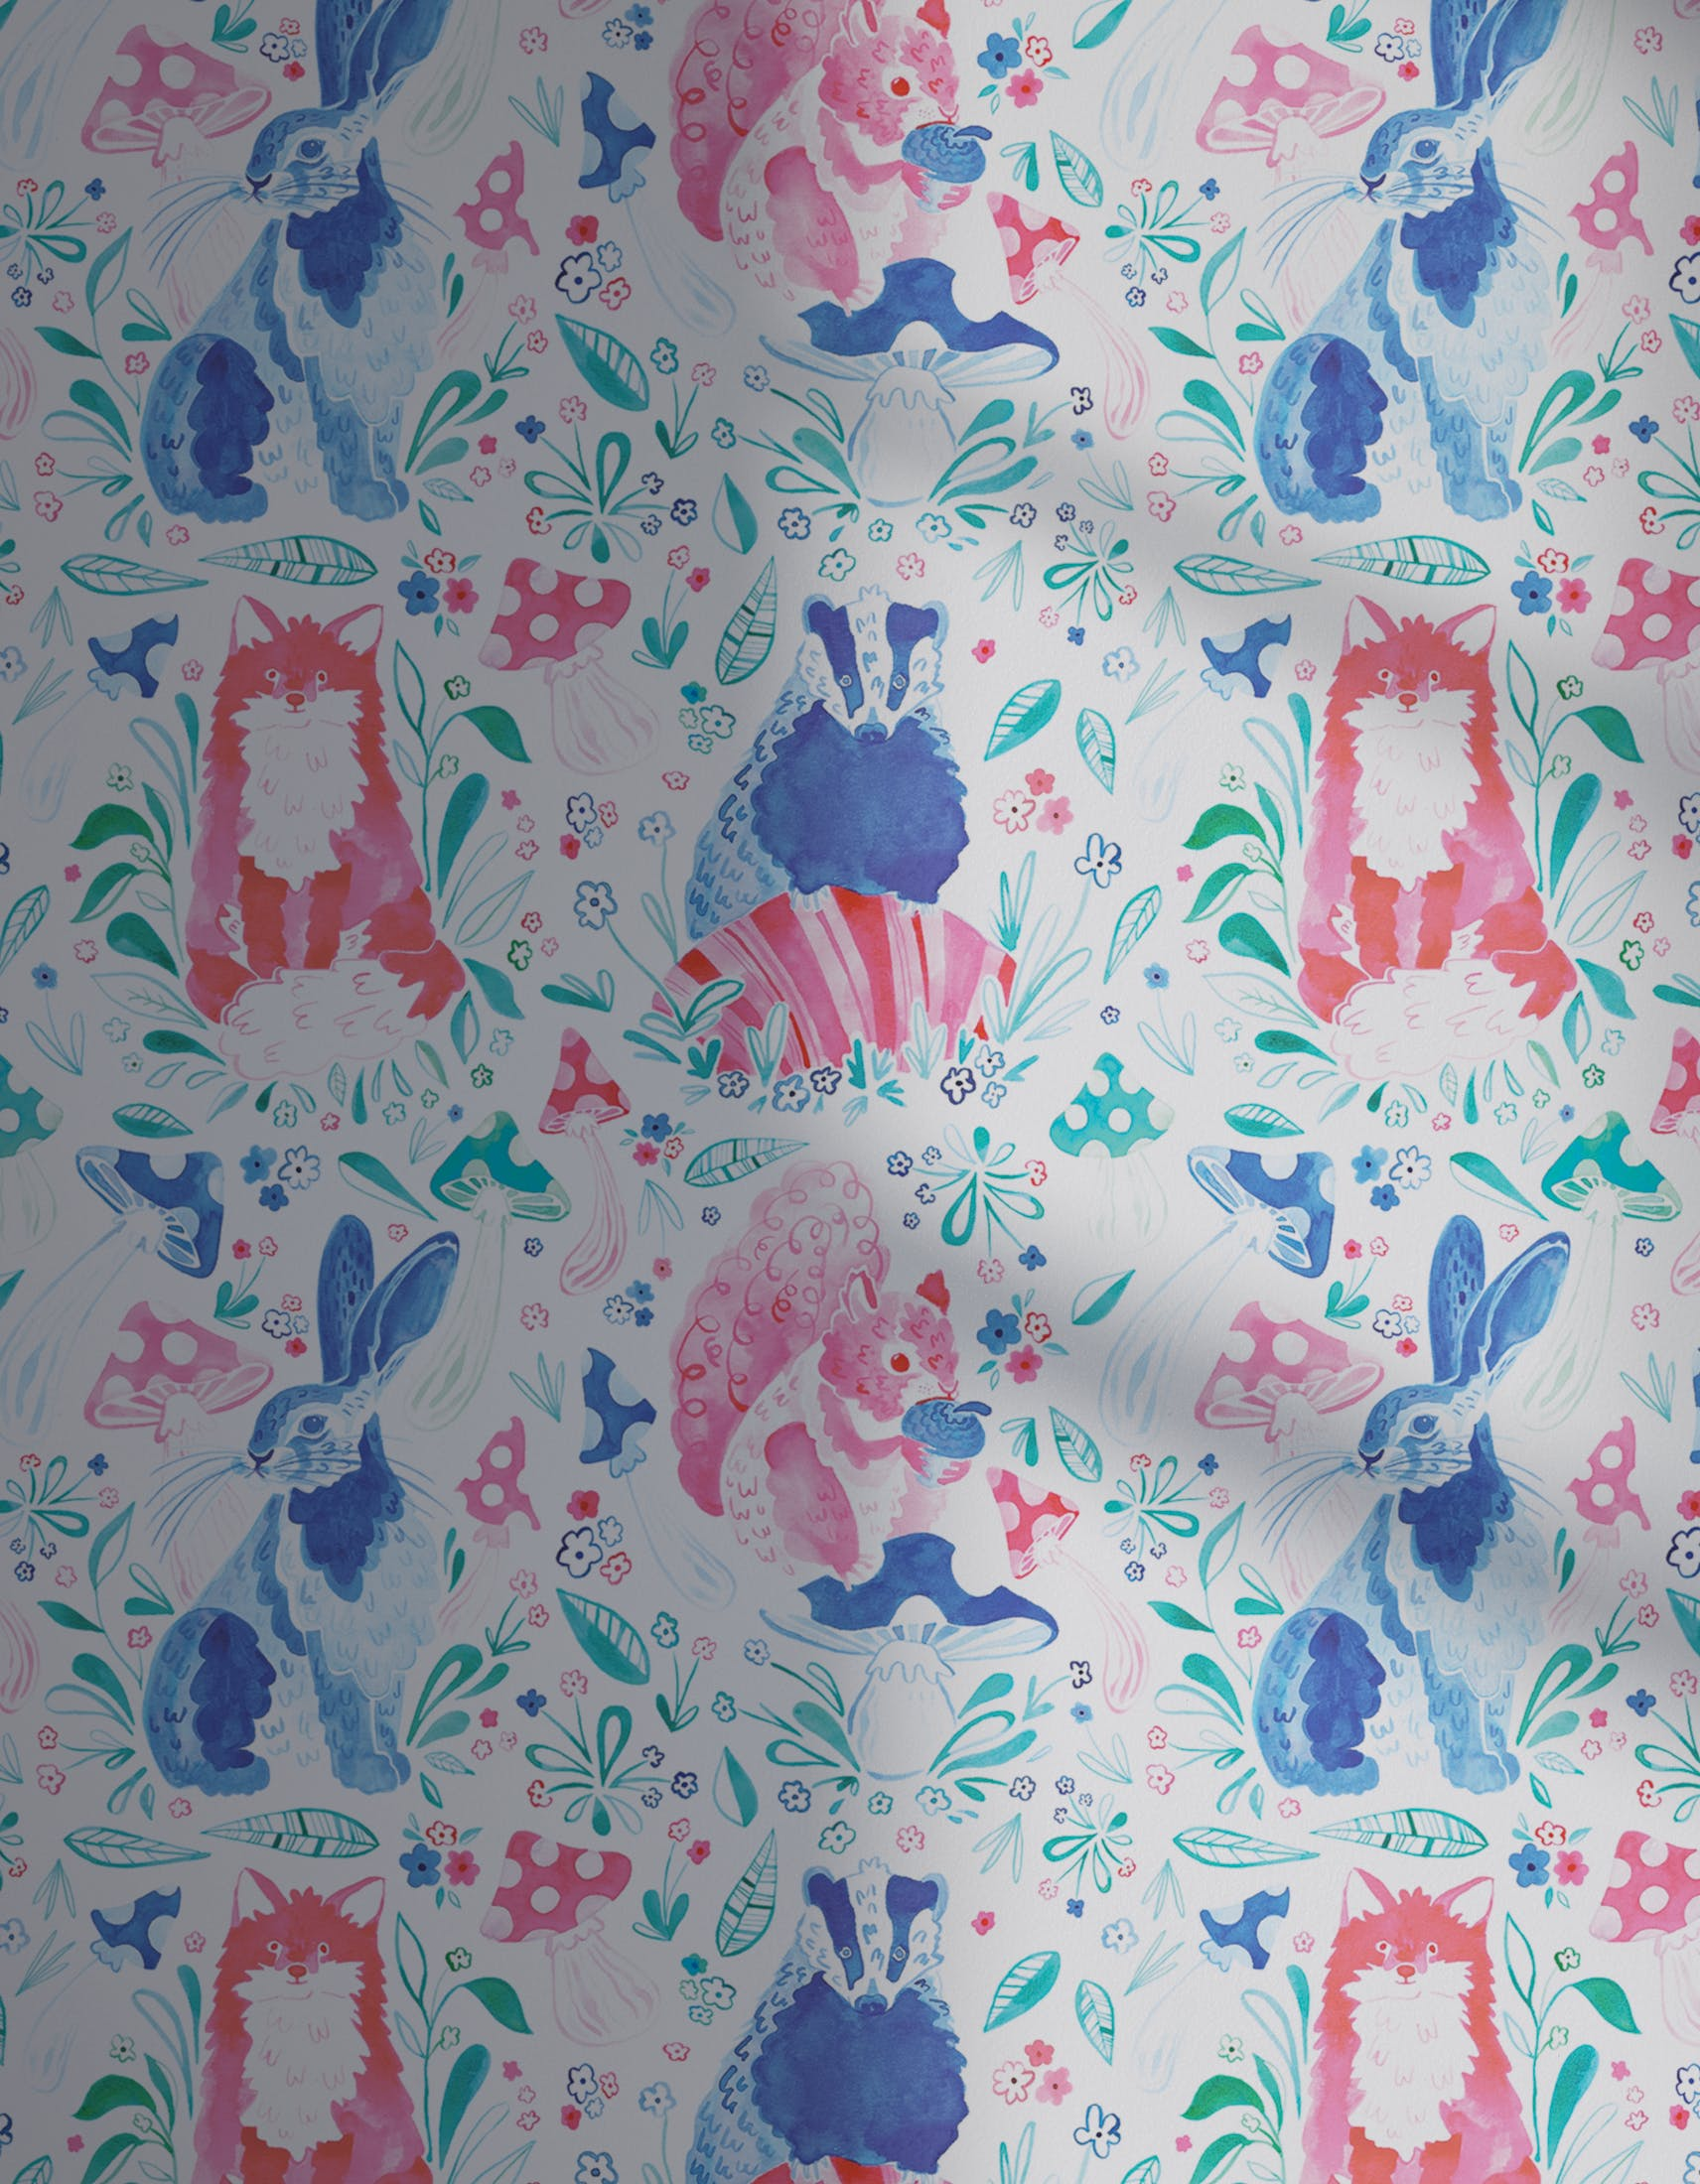 Lick x Franki Barber Woodland Animals 01 pink and blue children's wallpaper with shadow